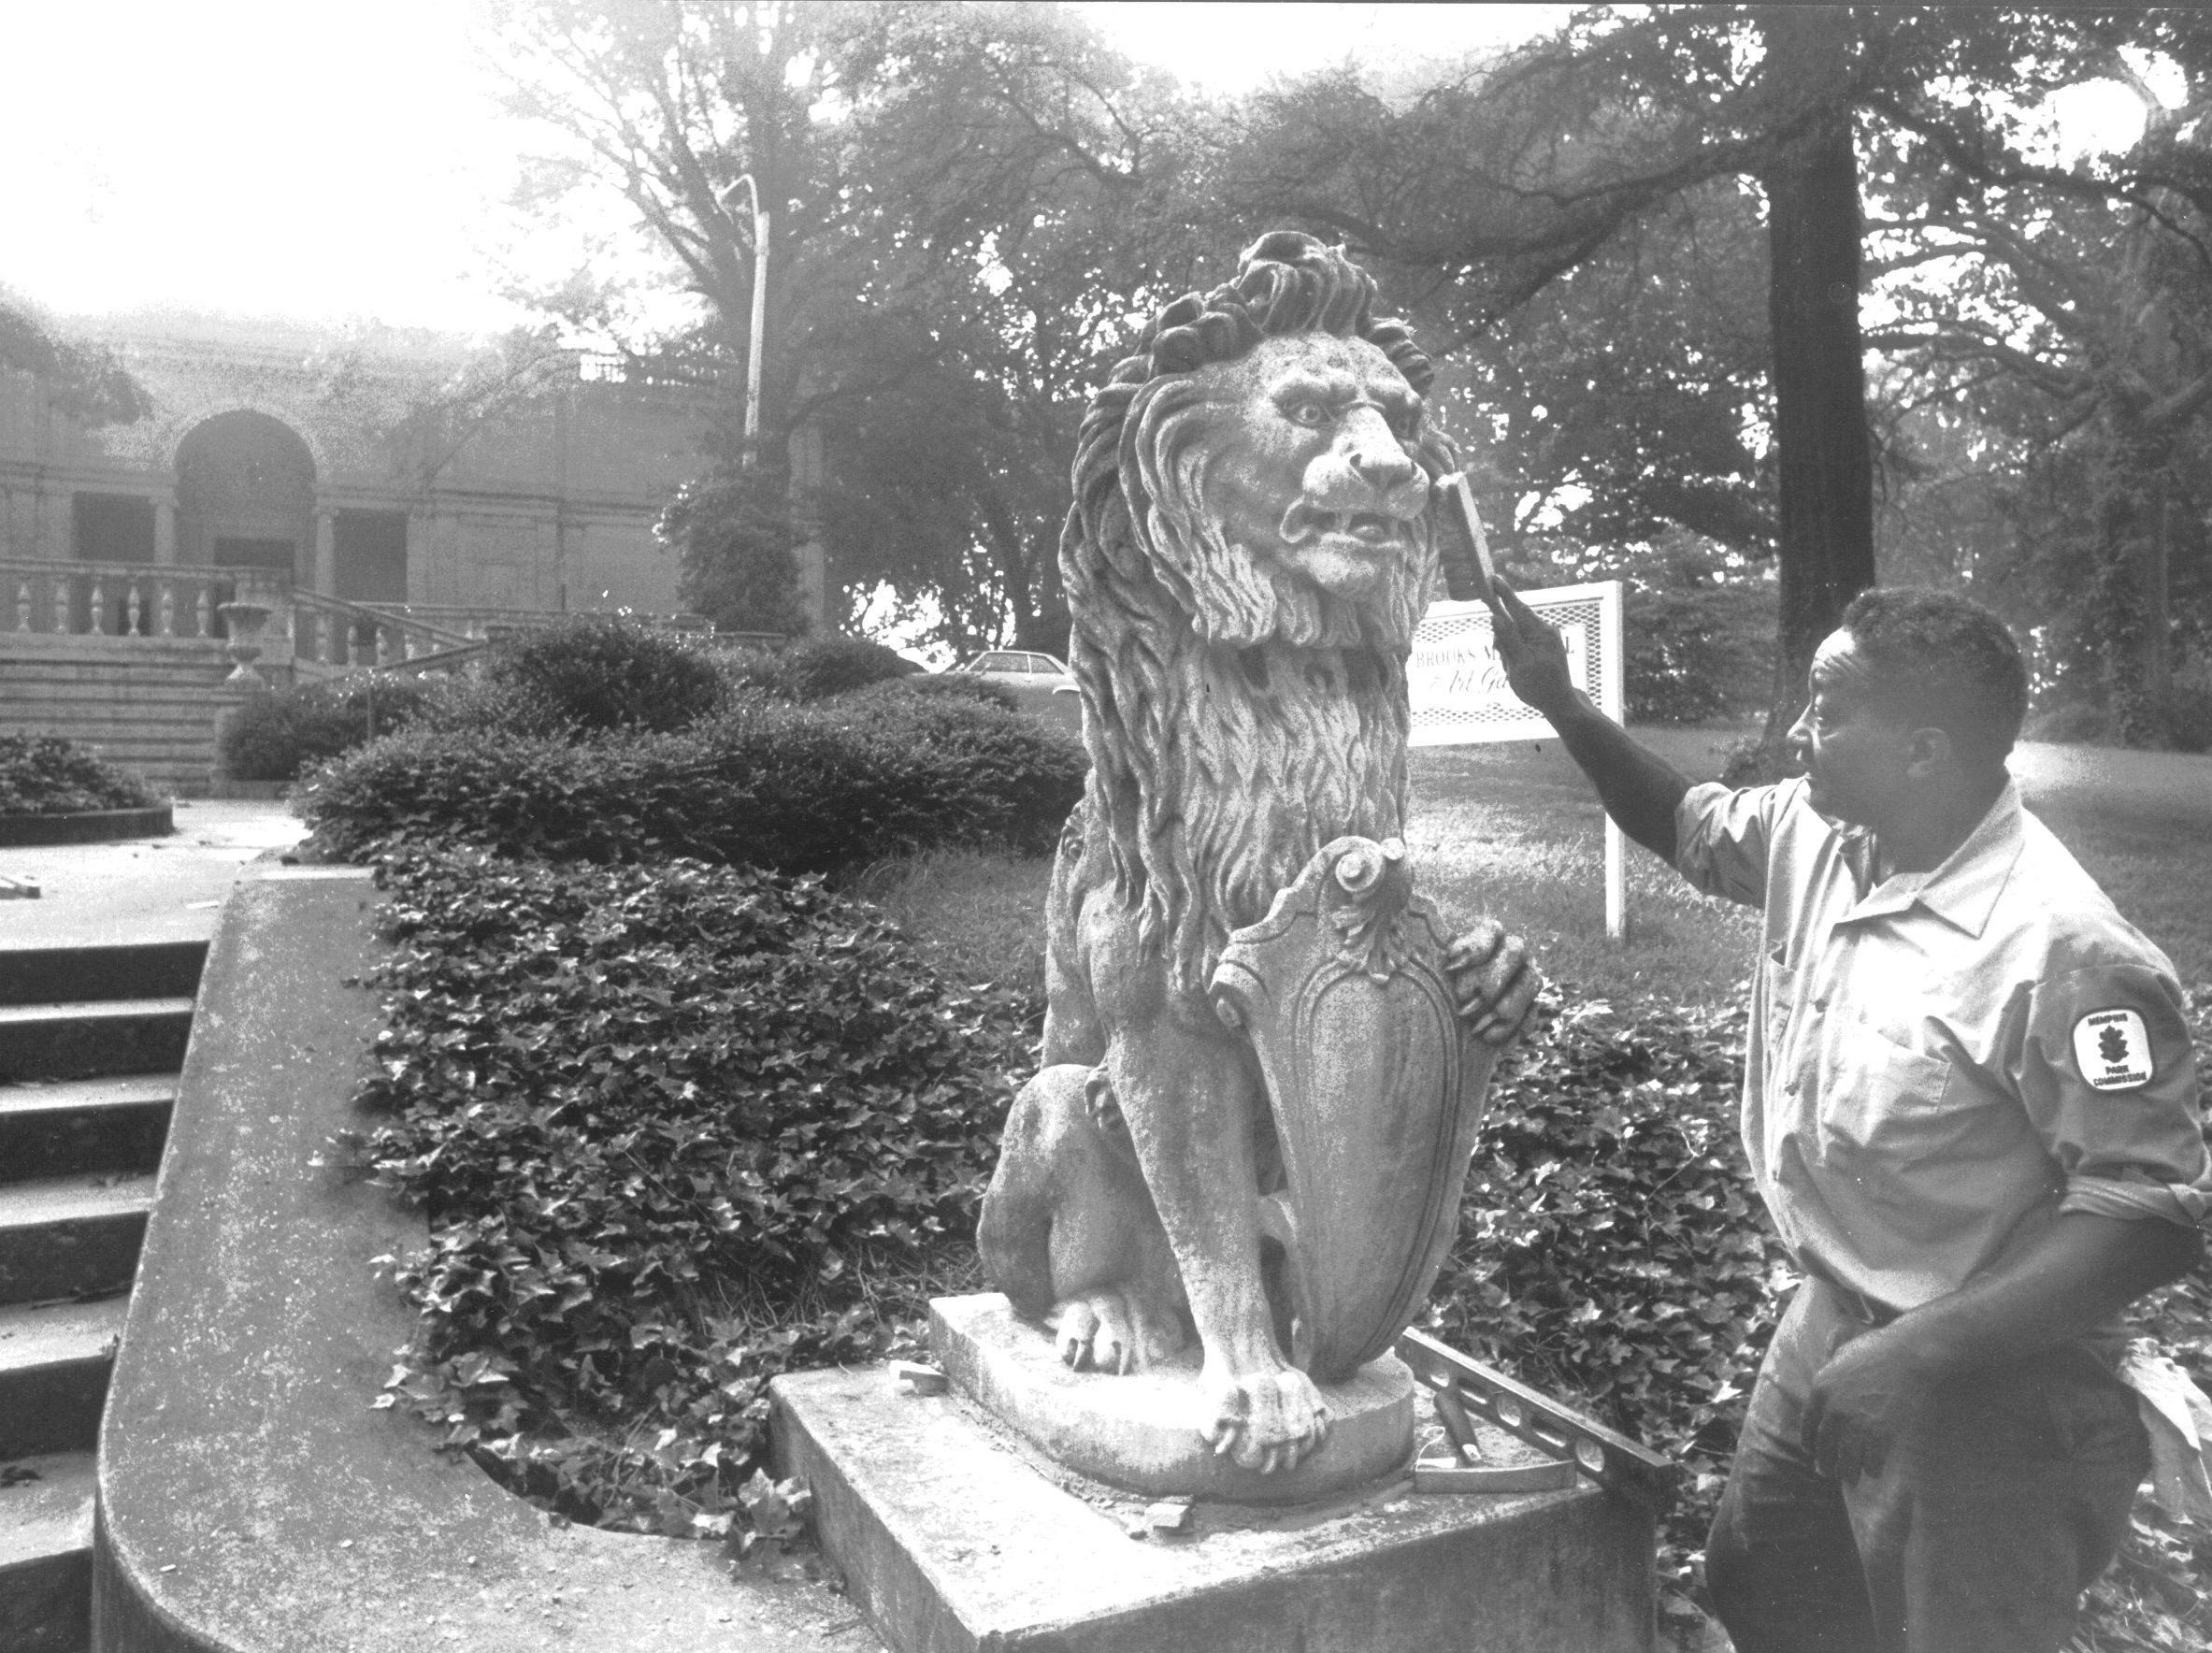 Memphis Park Commission employee Harden Bryant dusts off one of the two lions from the demolished Hill mansion on Union Avenue that have been donated to Brooks Memorial Art Gallery in Overton Park on Sept. 5, 1979.